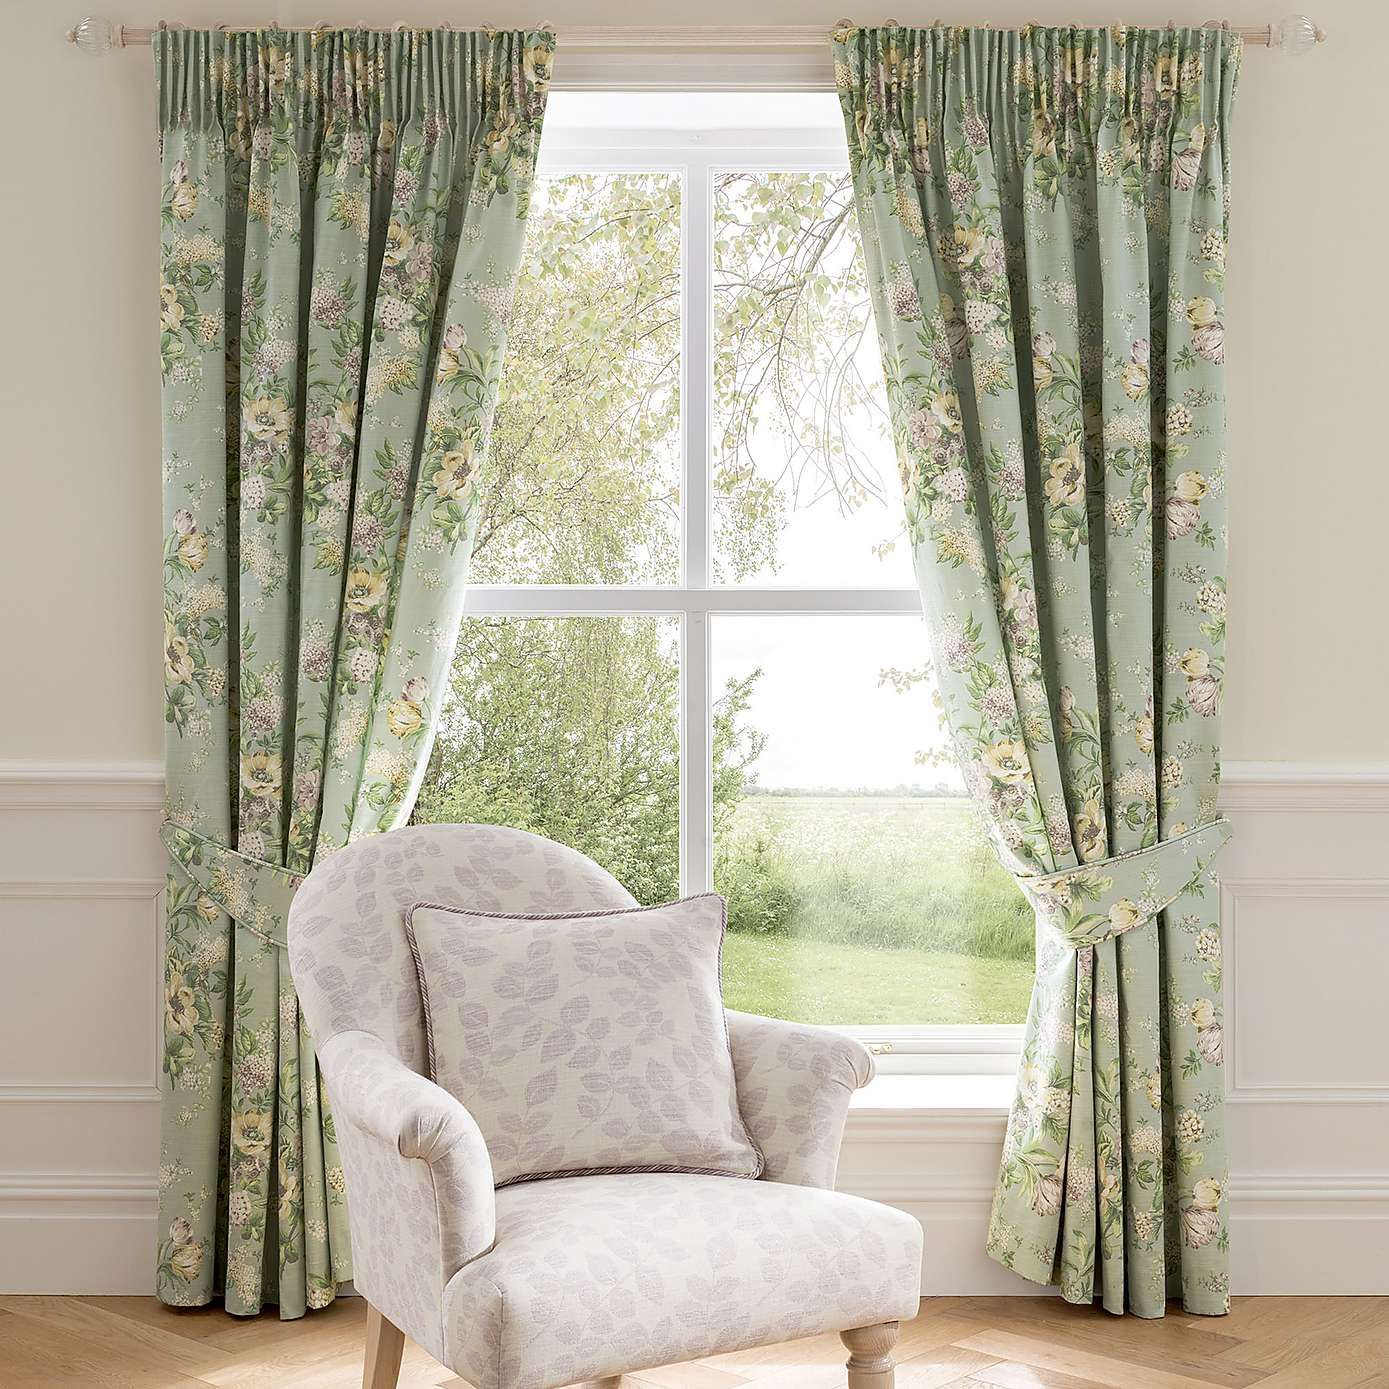 Dorma Duck Egg Brympton Lined Pencil Pleat Curtains